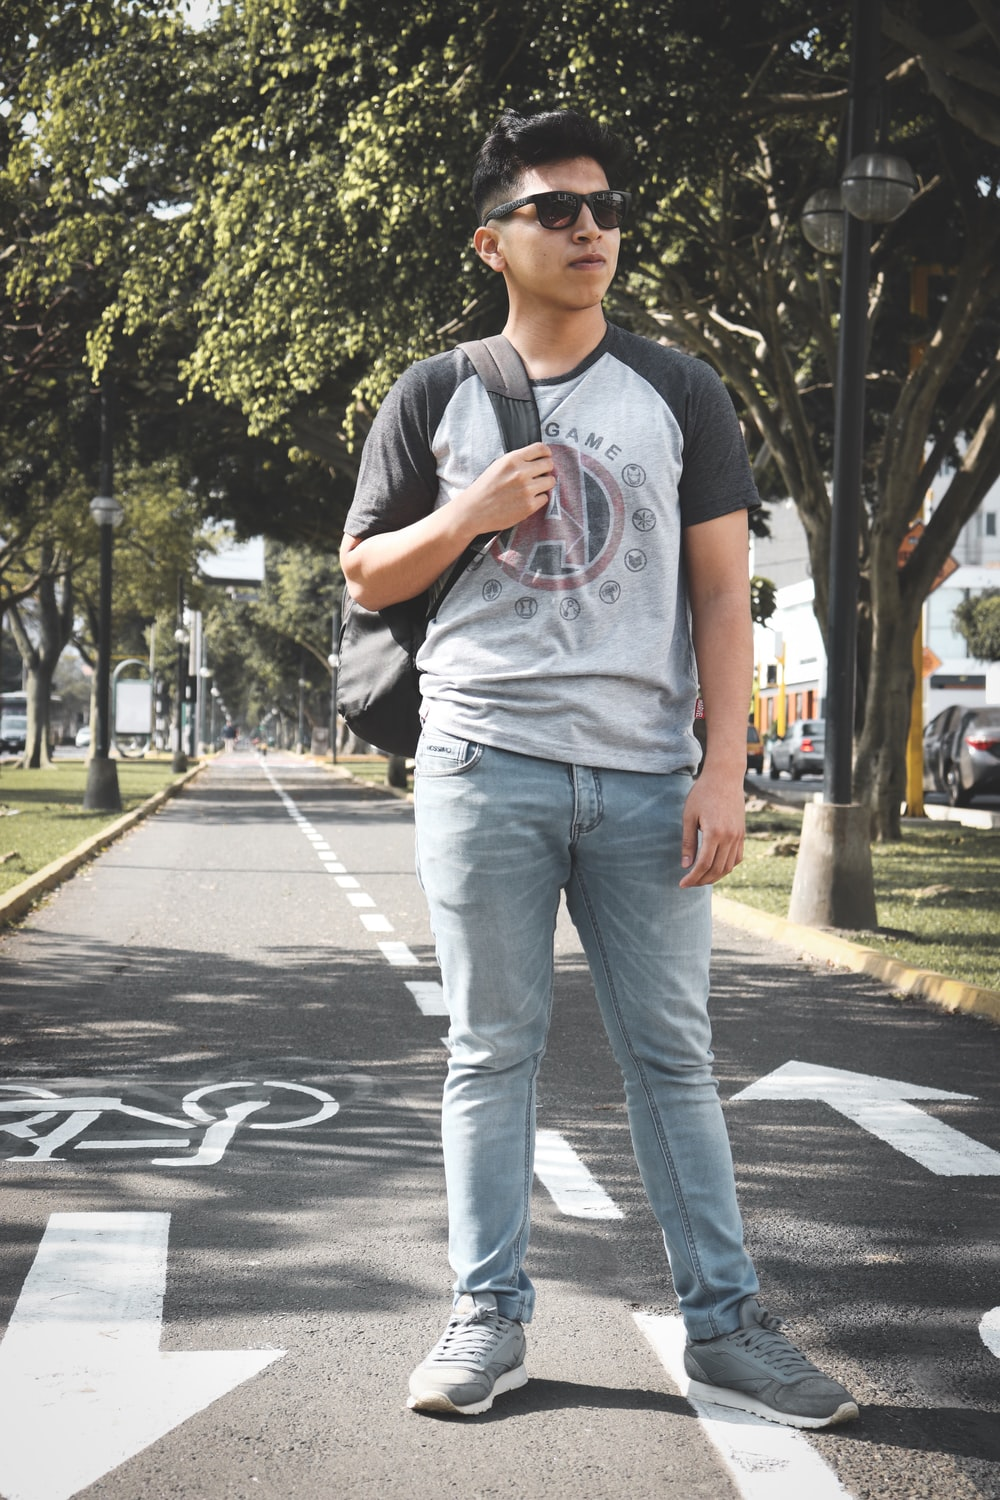 man standing on concrete road near trees